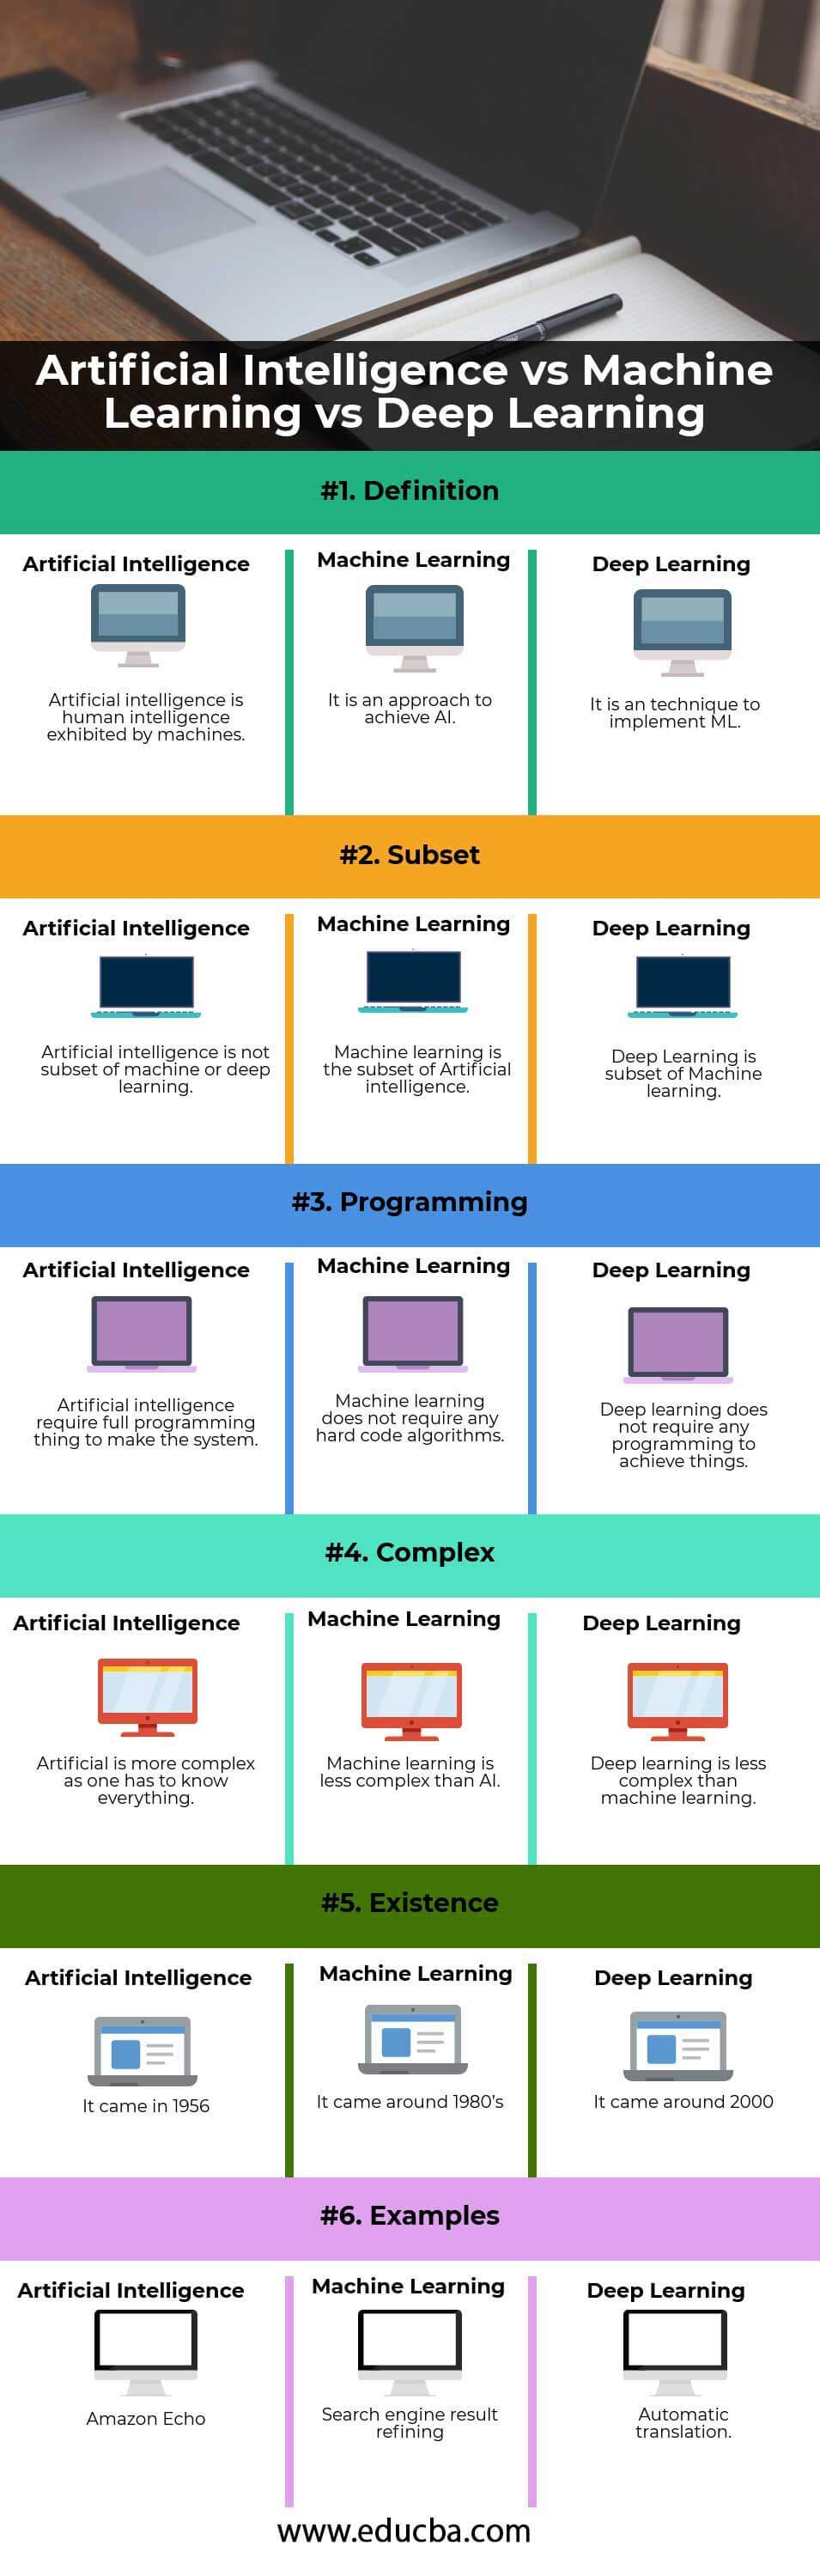 artificial-intelligence-vs-machine-learning-vs-deep-learning info